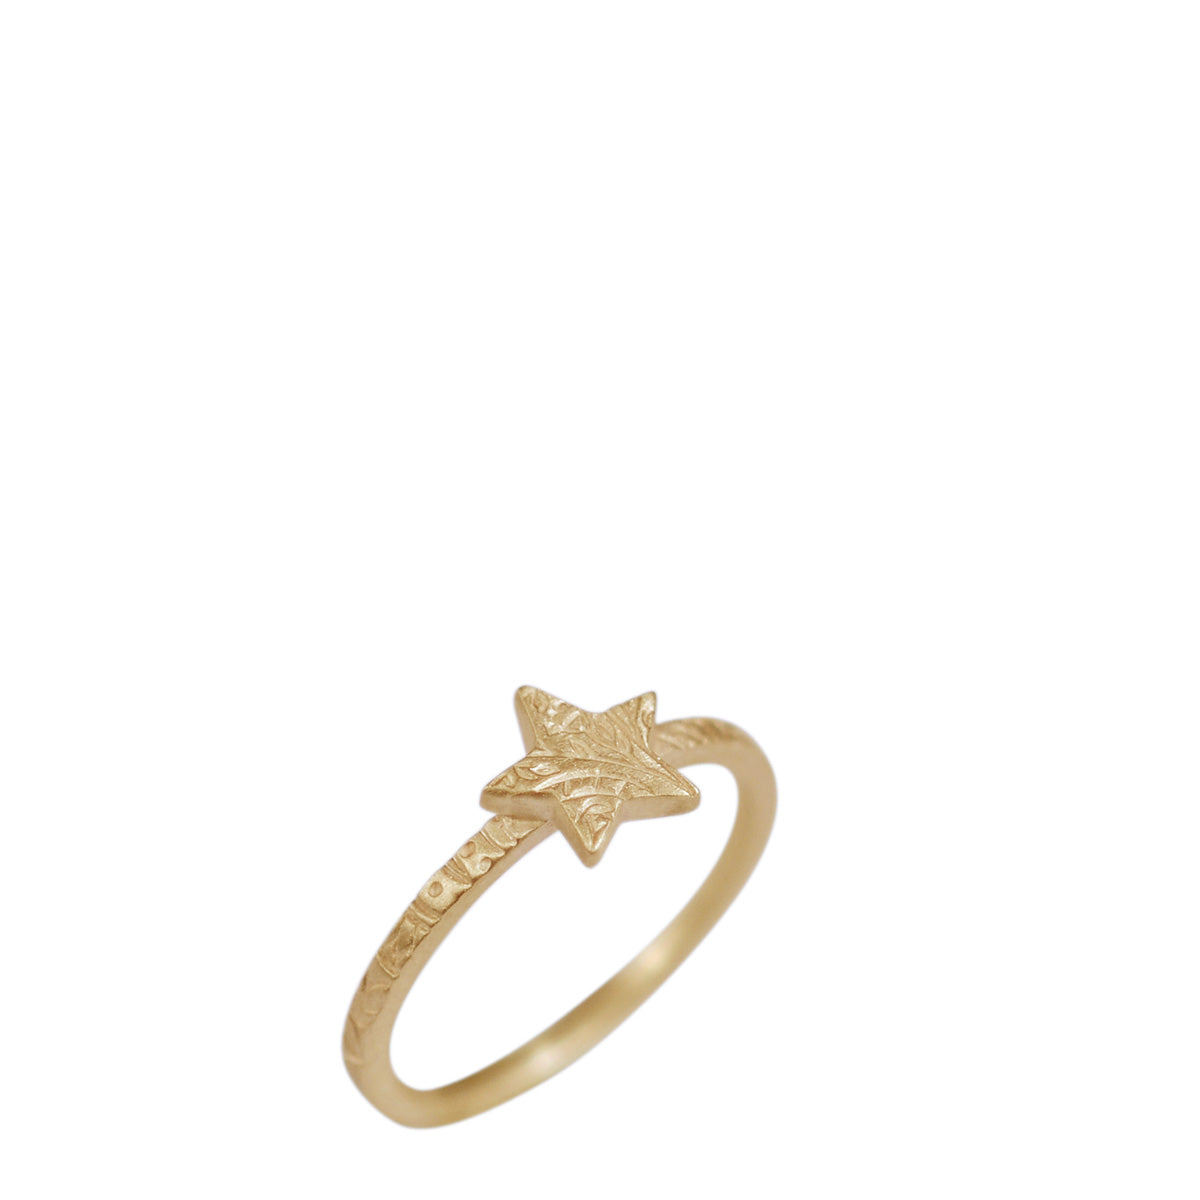 10K Gold Paisley Star Ring